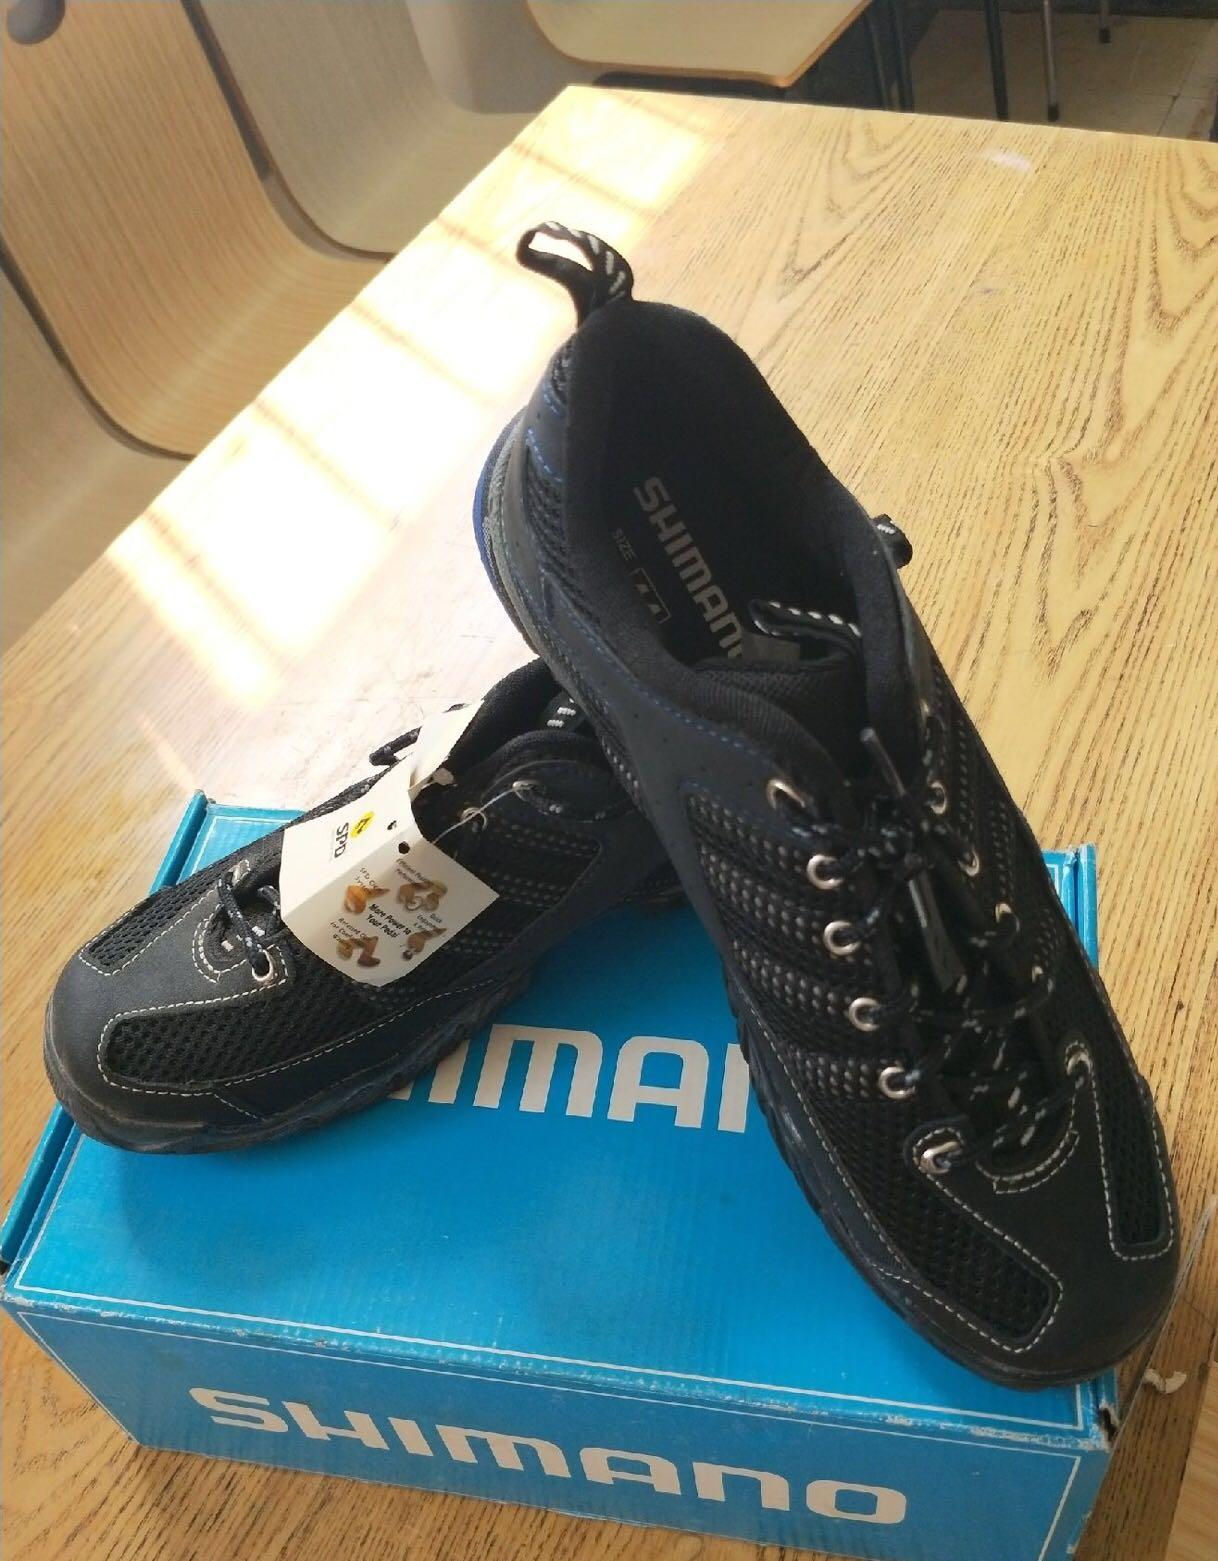 Shimano MT33 AM cleat shoe / size 42.44 / All new brand